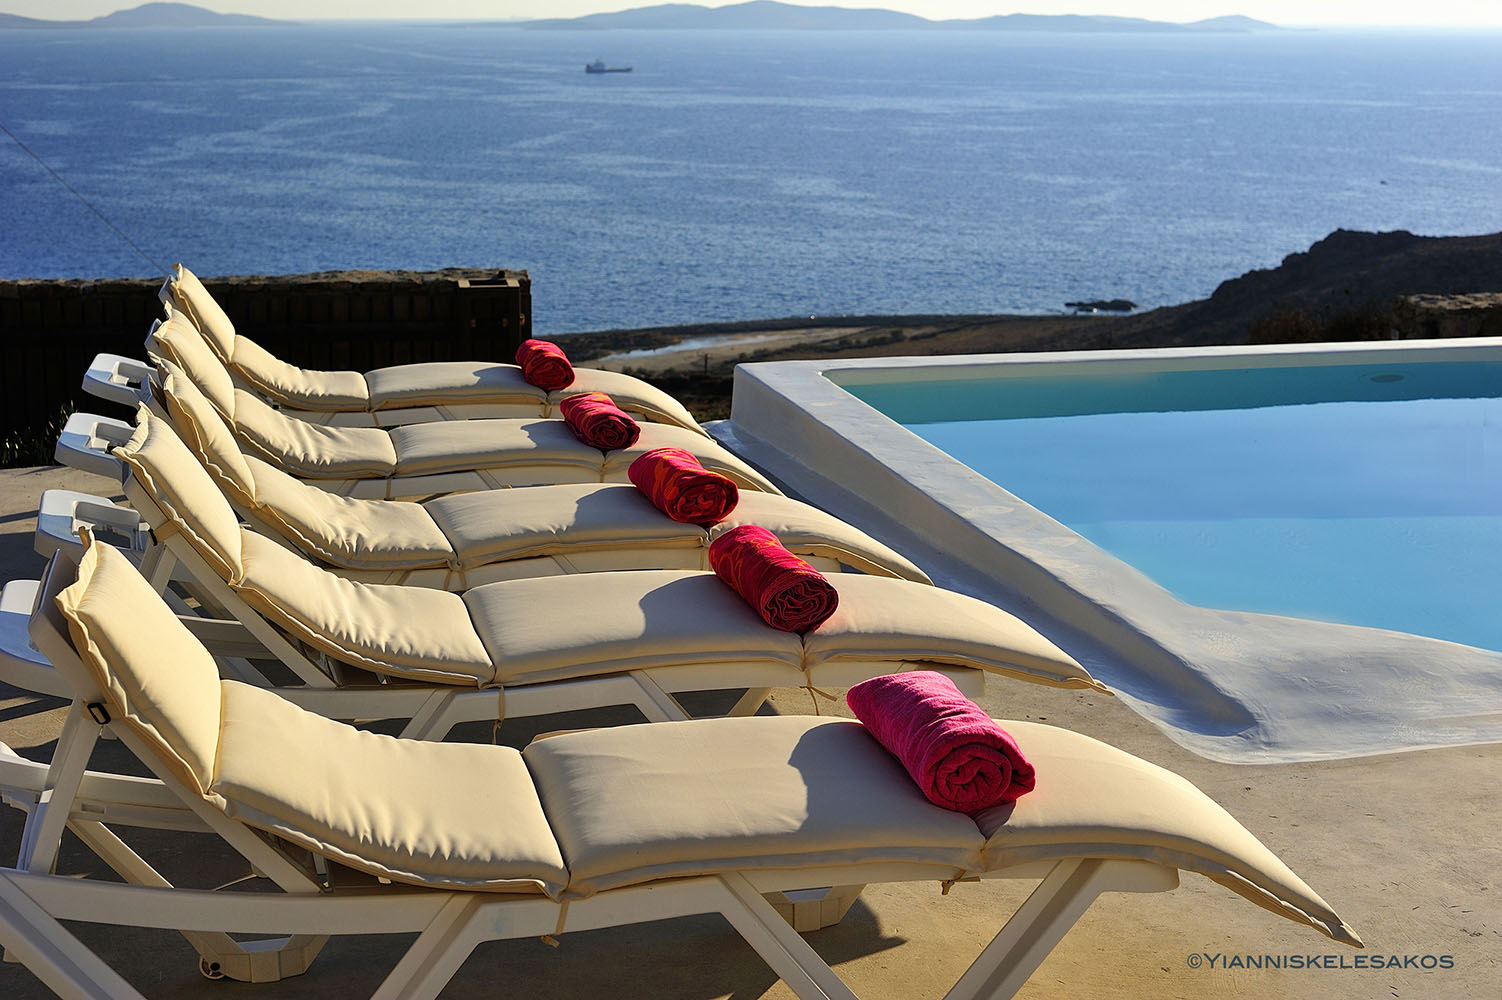 Blue Villas Collection in Mykonos & Santorini